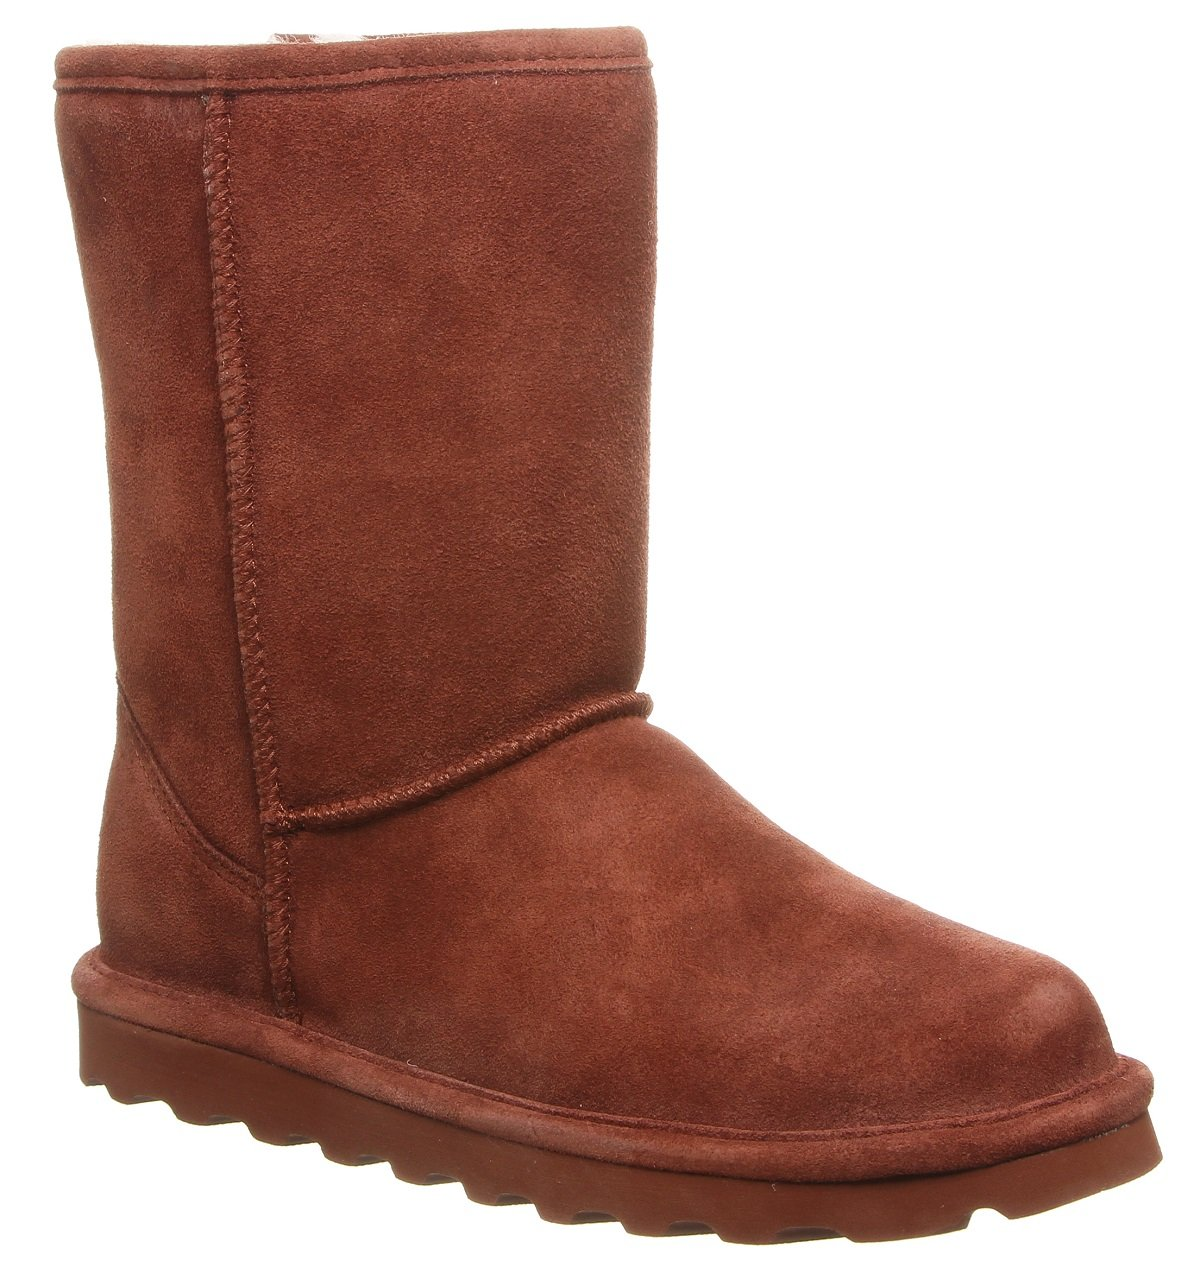 BEARPAW Women's Elle Short Fashion Boot B079CCNG35 10 B(M) US|Russet